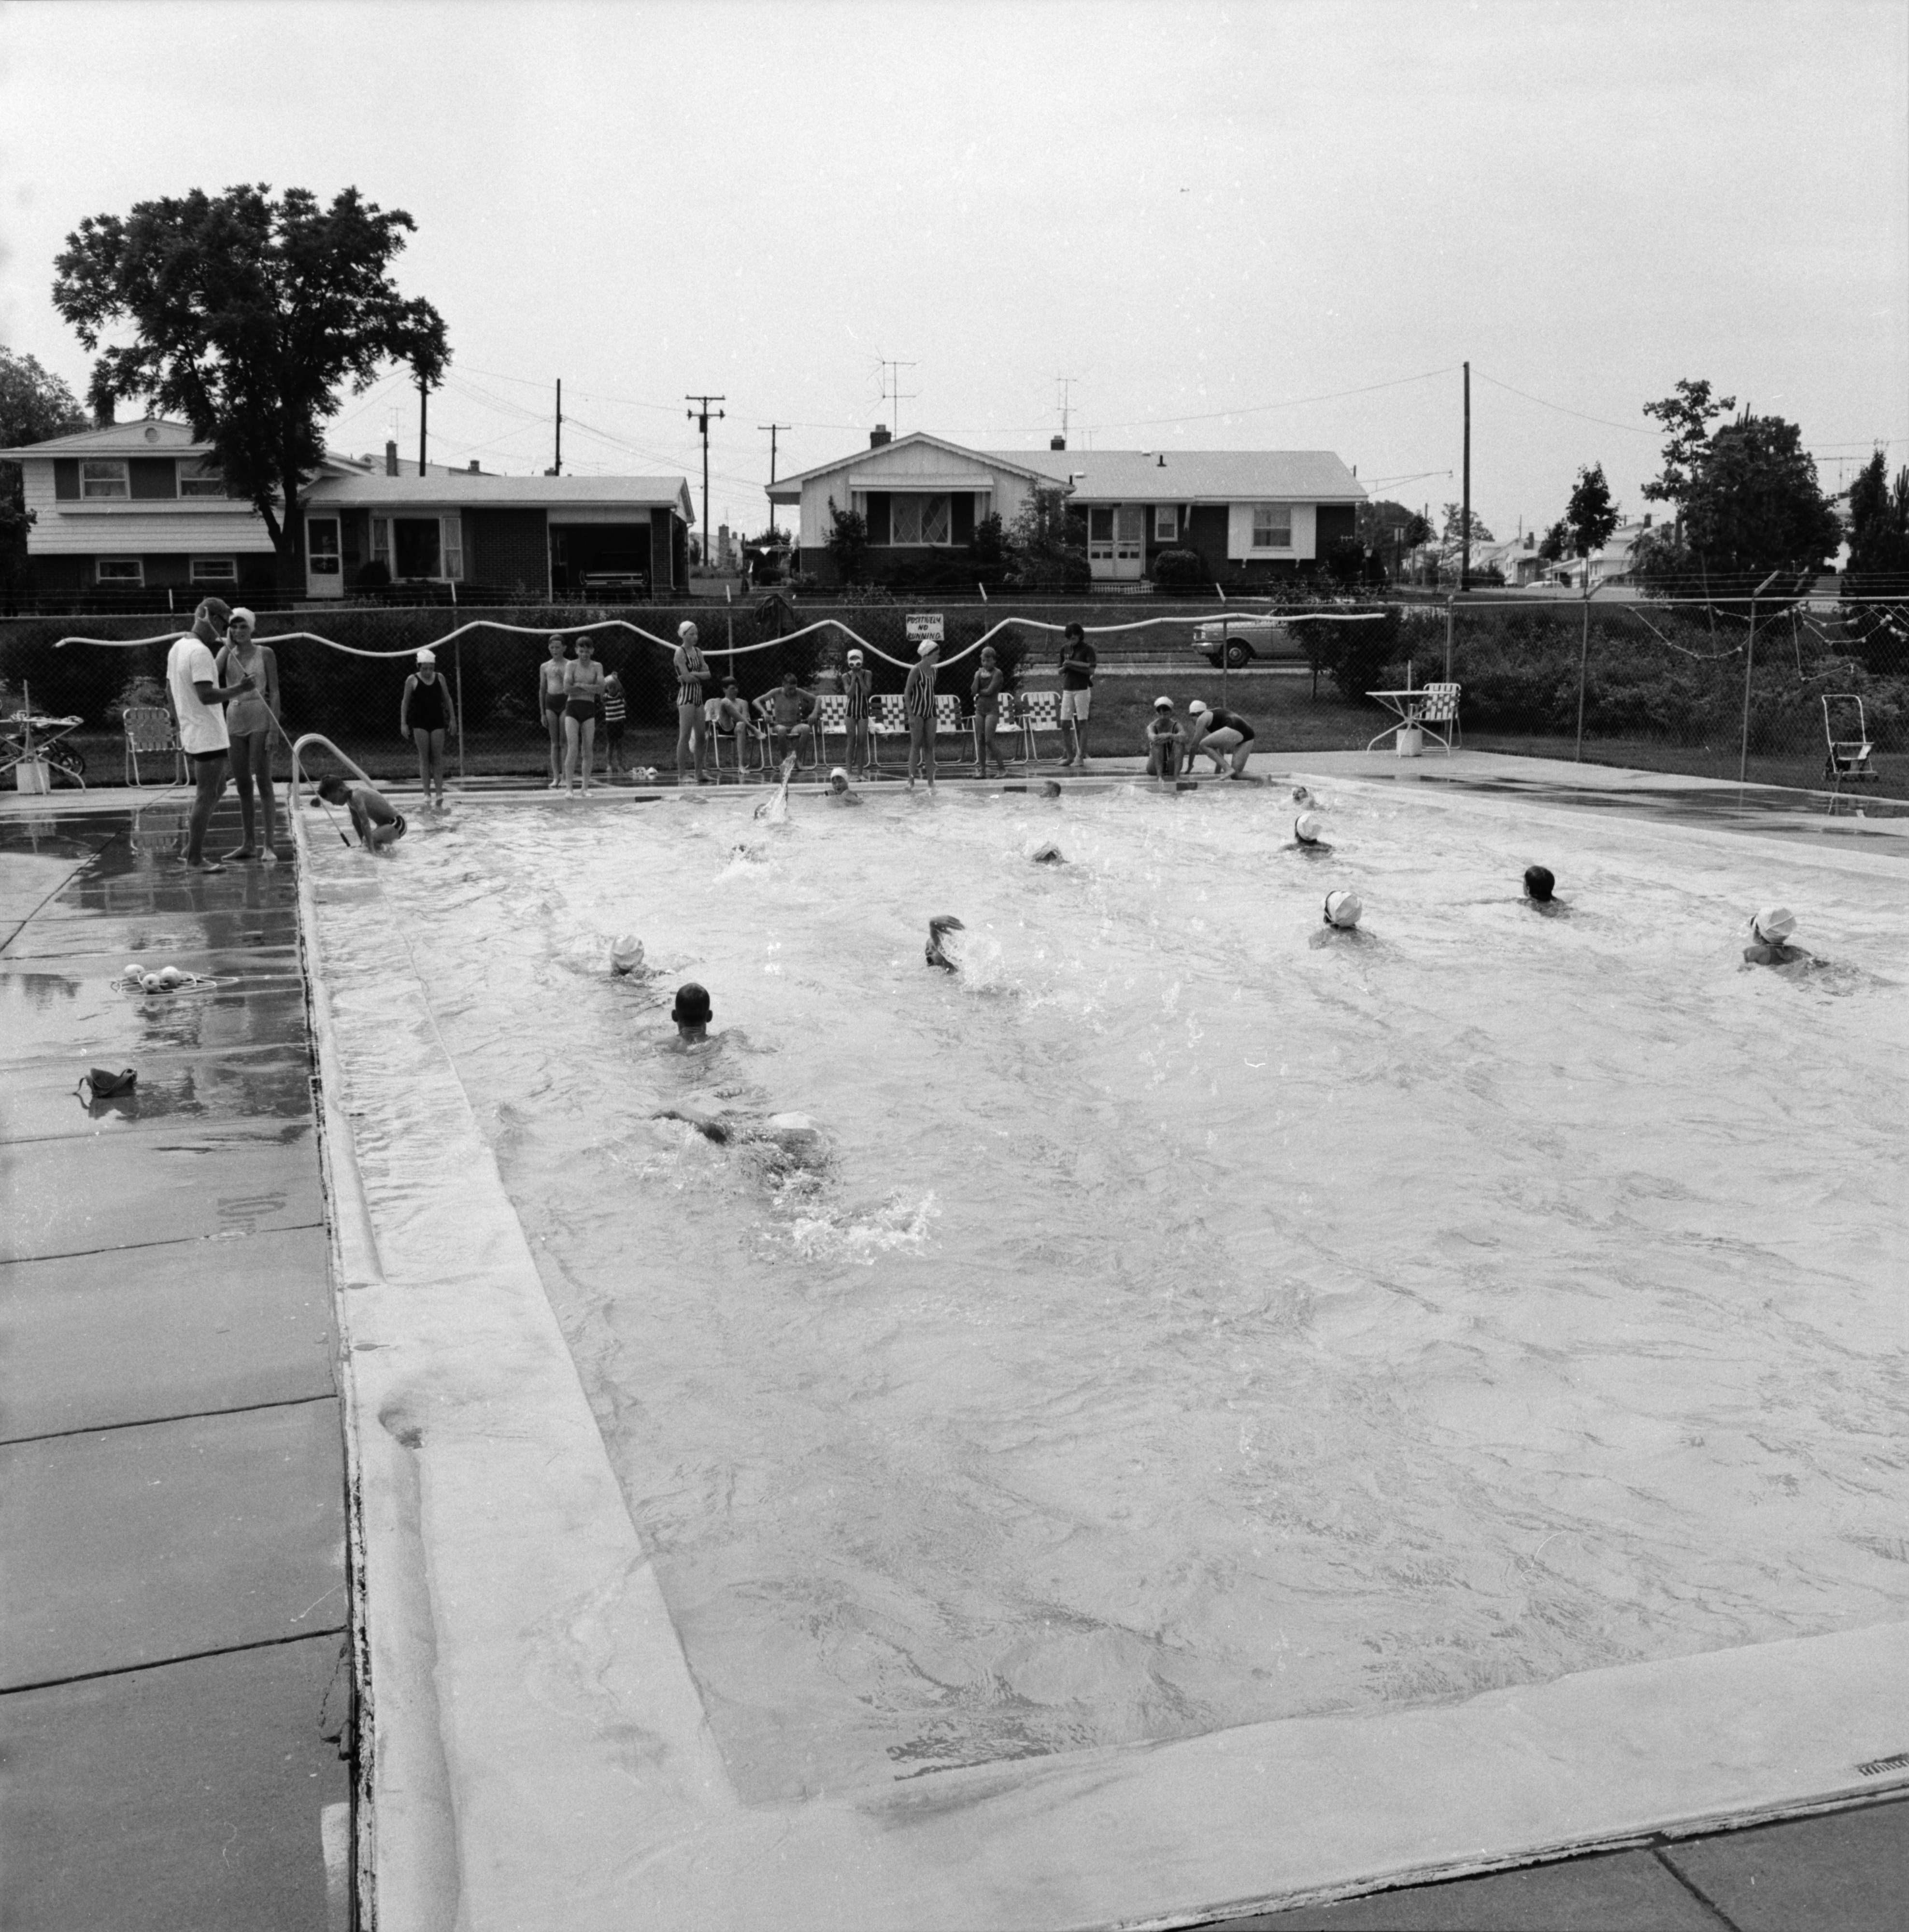 Pool at Forestbrooke Athletic Club, June 1966 image